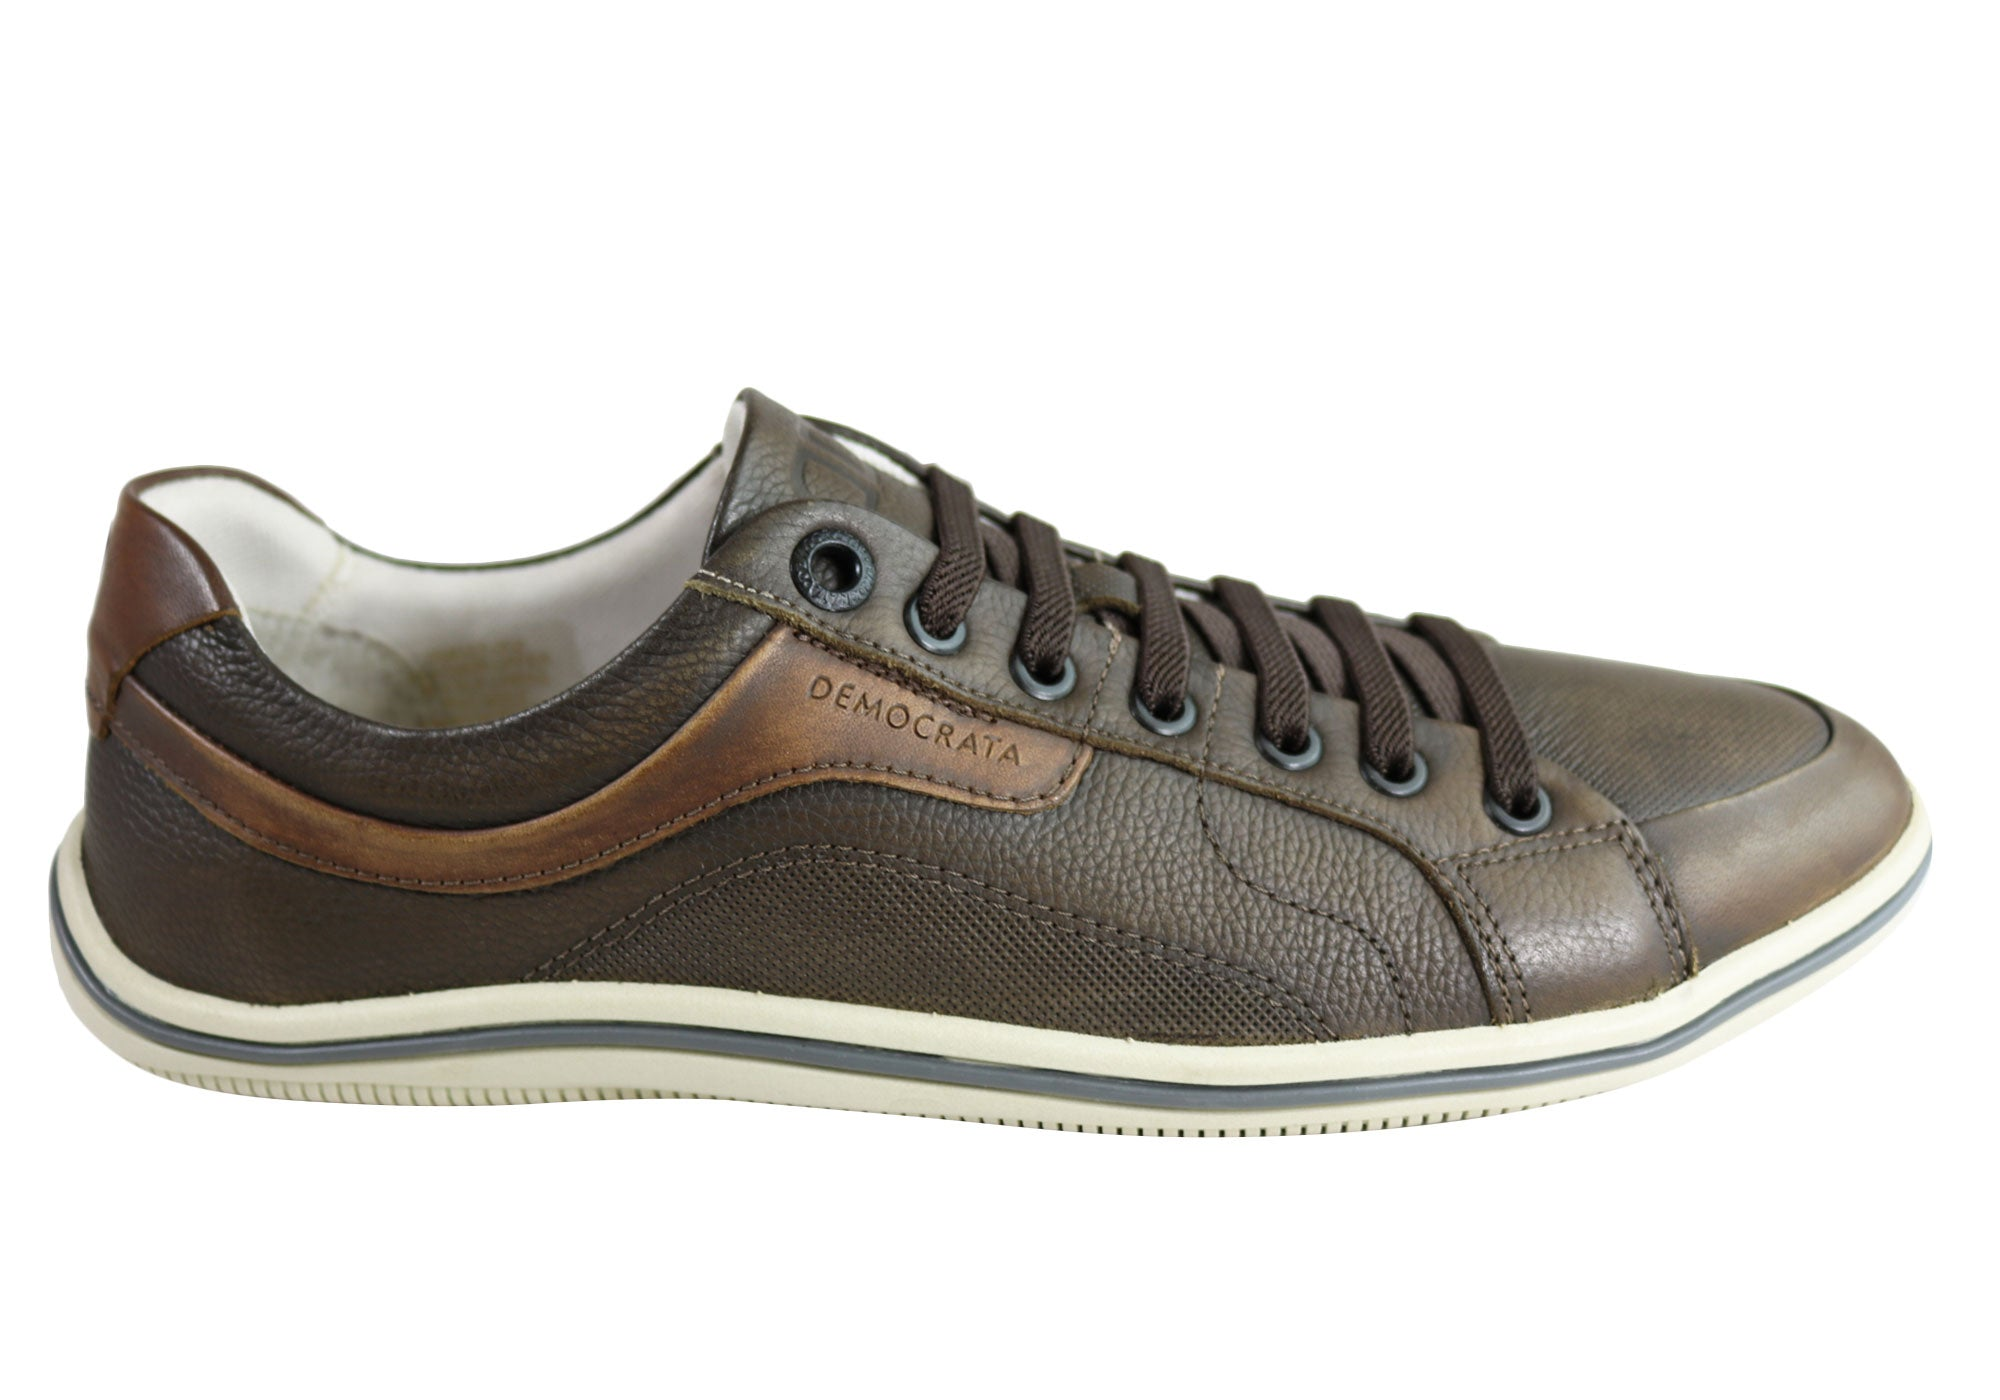 NEW-DEMOCRATA-MILES-MENS-LEATHER-SLIP-ON-CASUAL-SHOES-MADE-IN-BRAZIL thumbnail 2